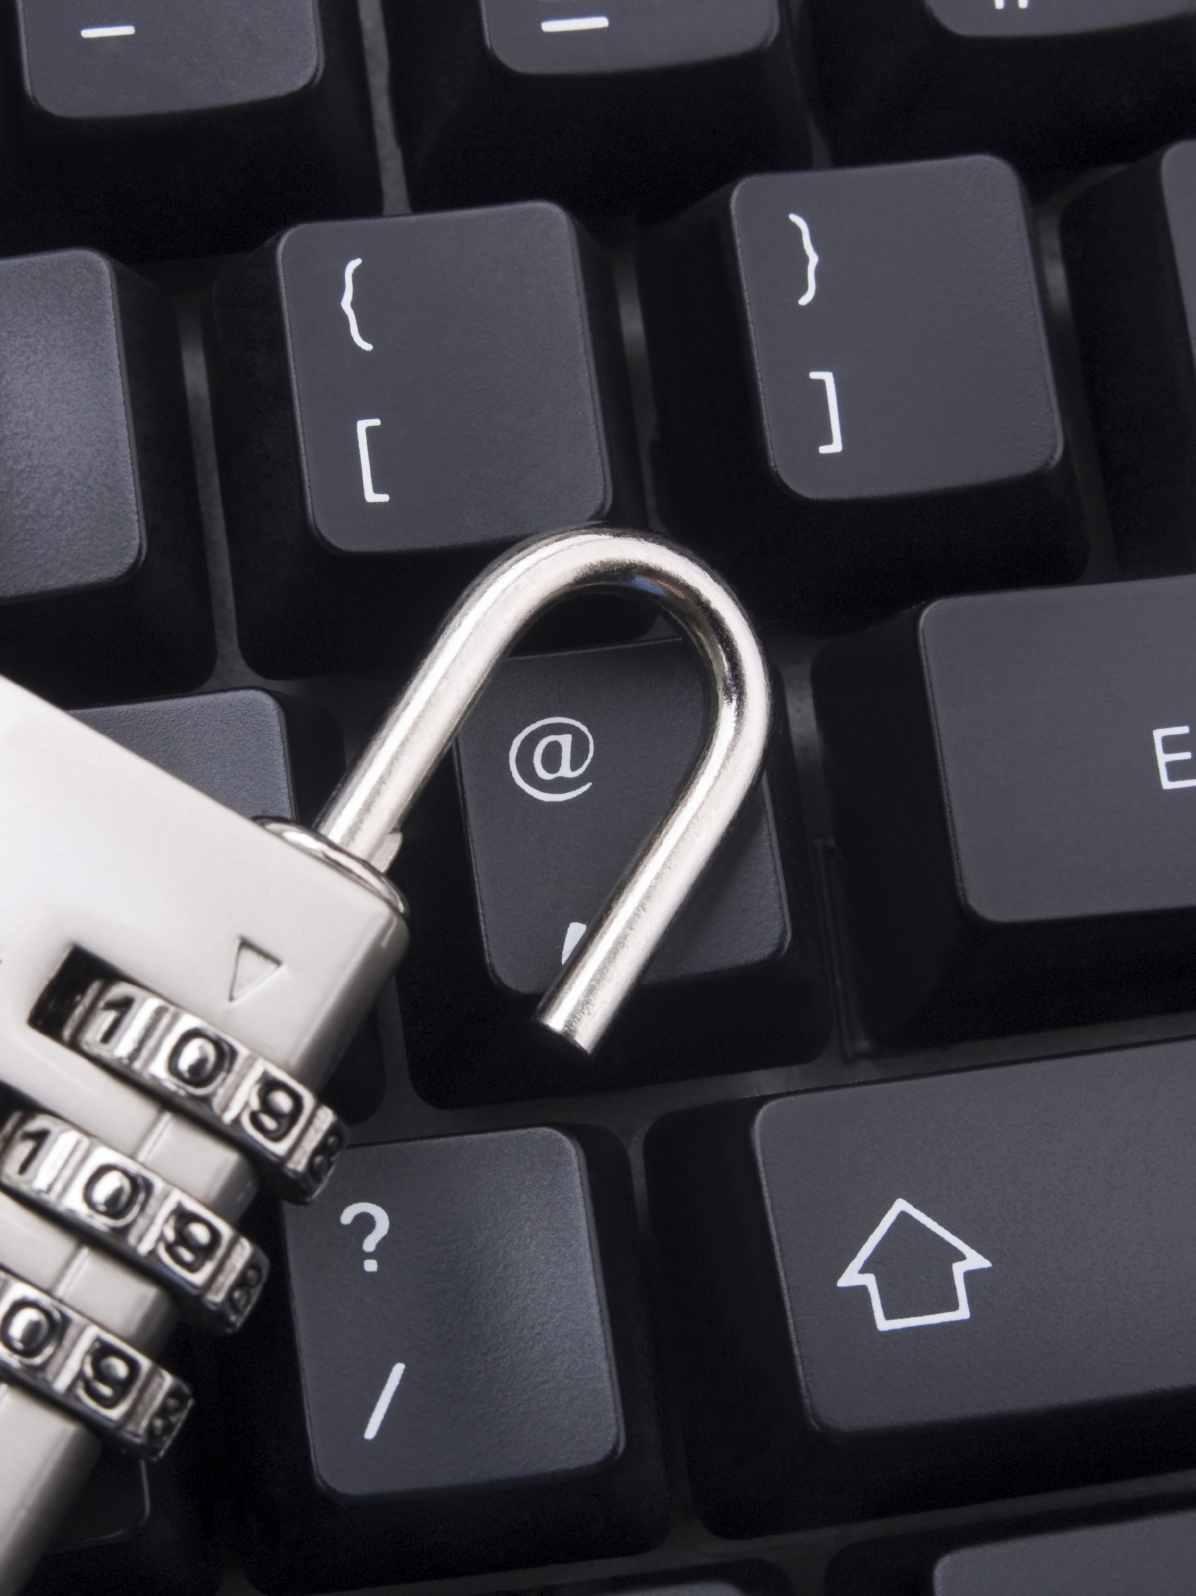 Cracking The Code: Just How Does Encrypted Email Work?